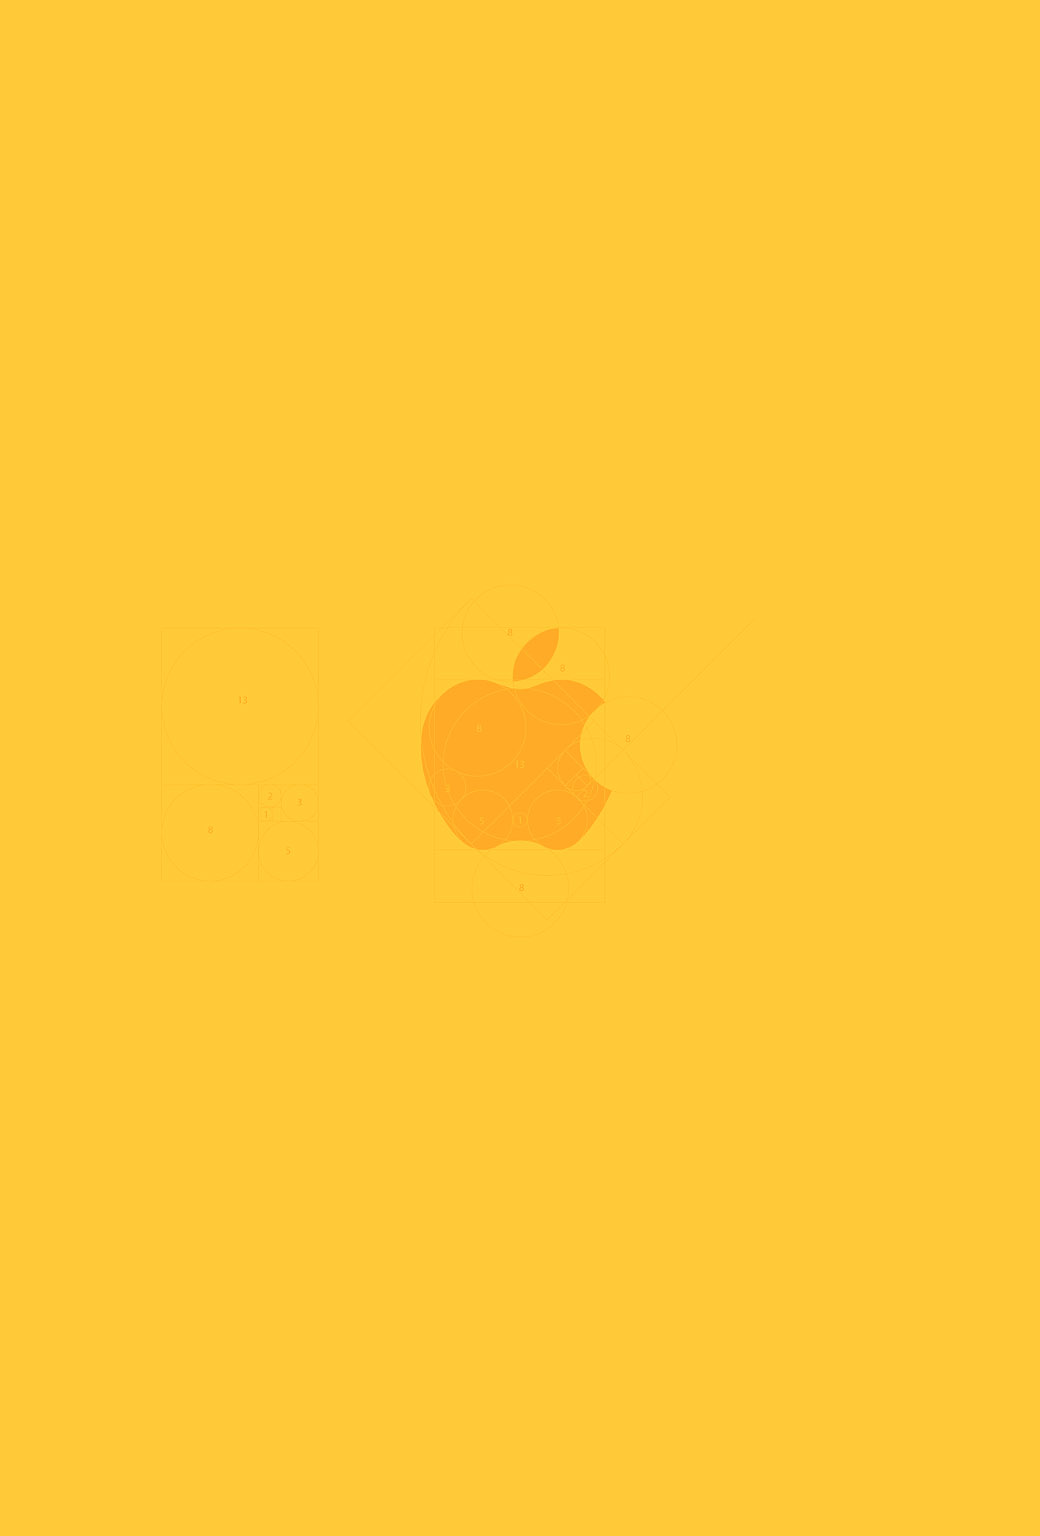 30 Nice Yellow Apple Wallpapers In High Quality Obrad Hassent